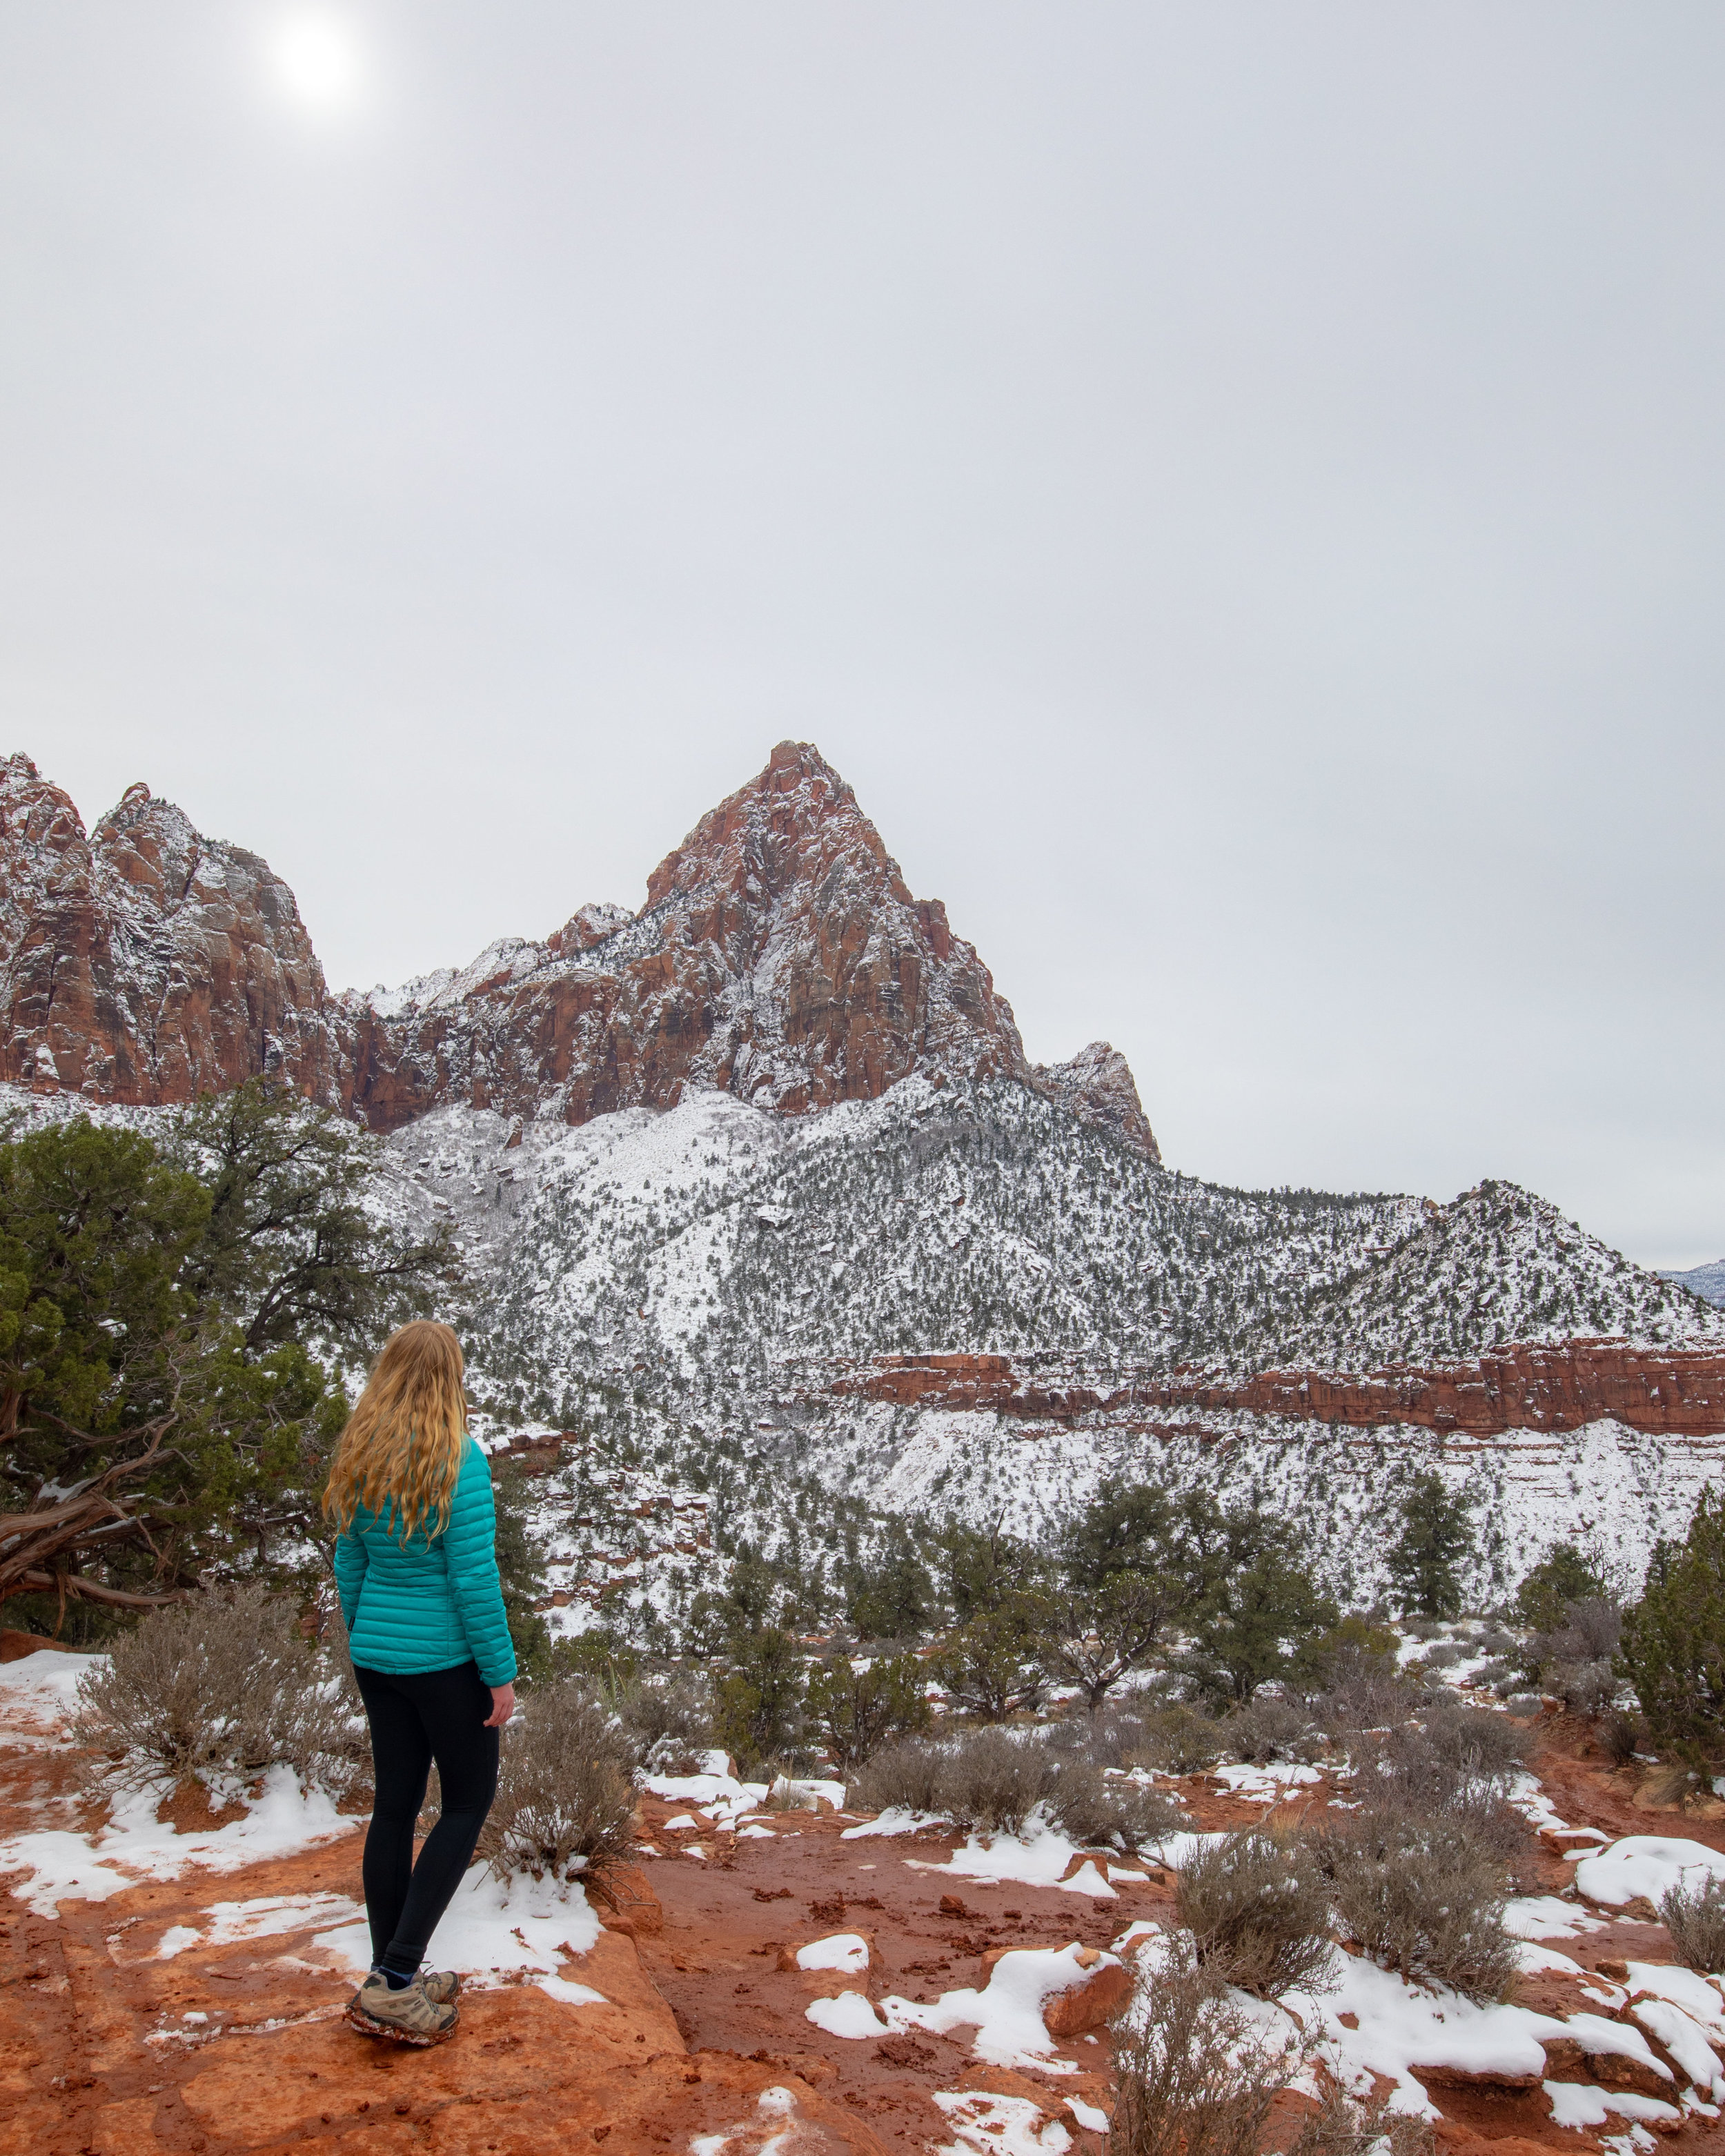 The viewpoint on the Watchman Trail in winter